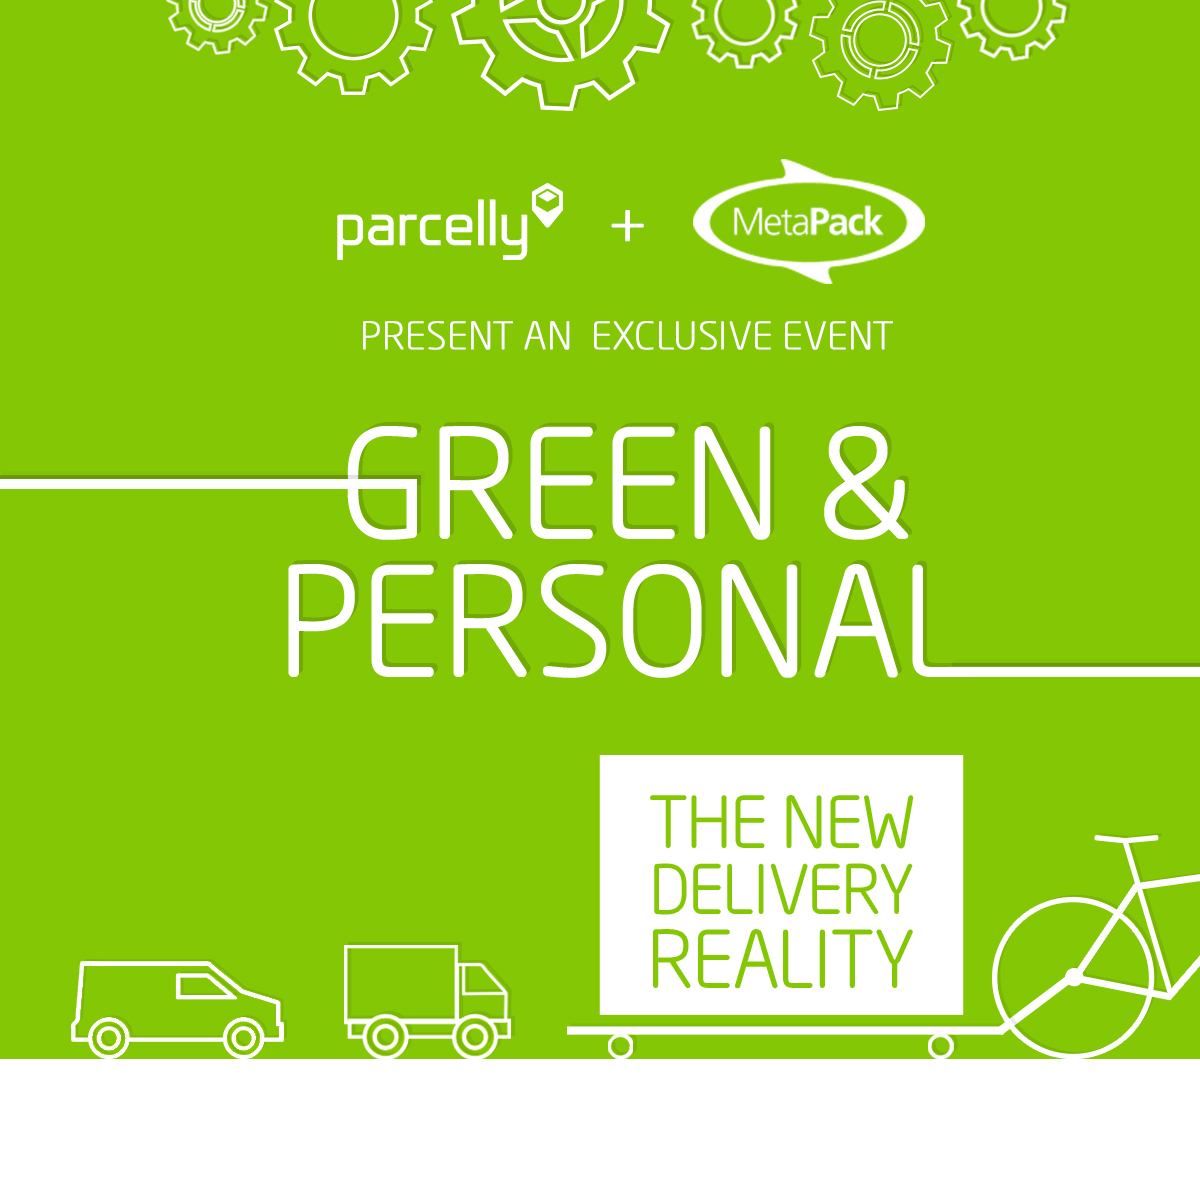 MetaPack Parcelly Green Personal Delivery